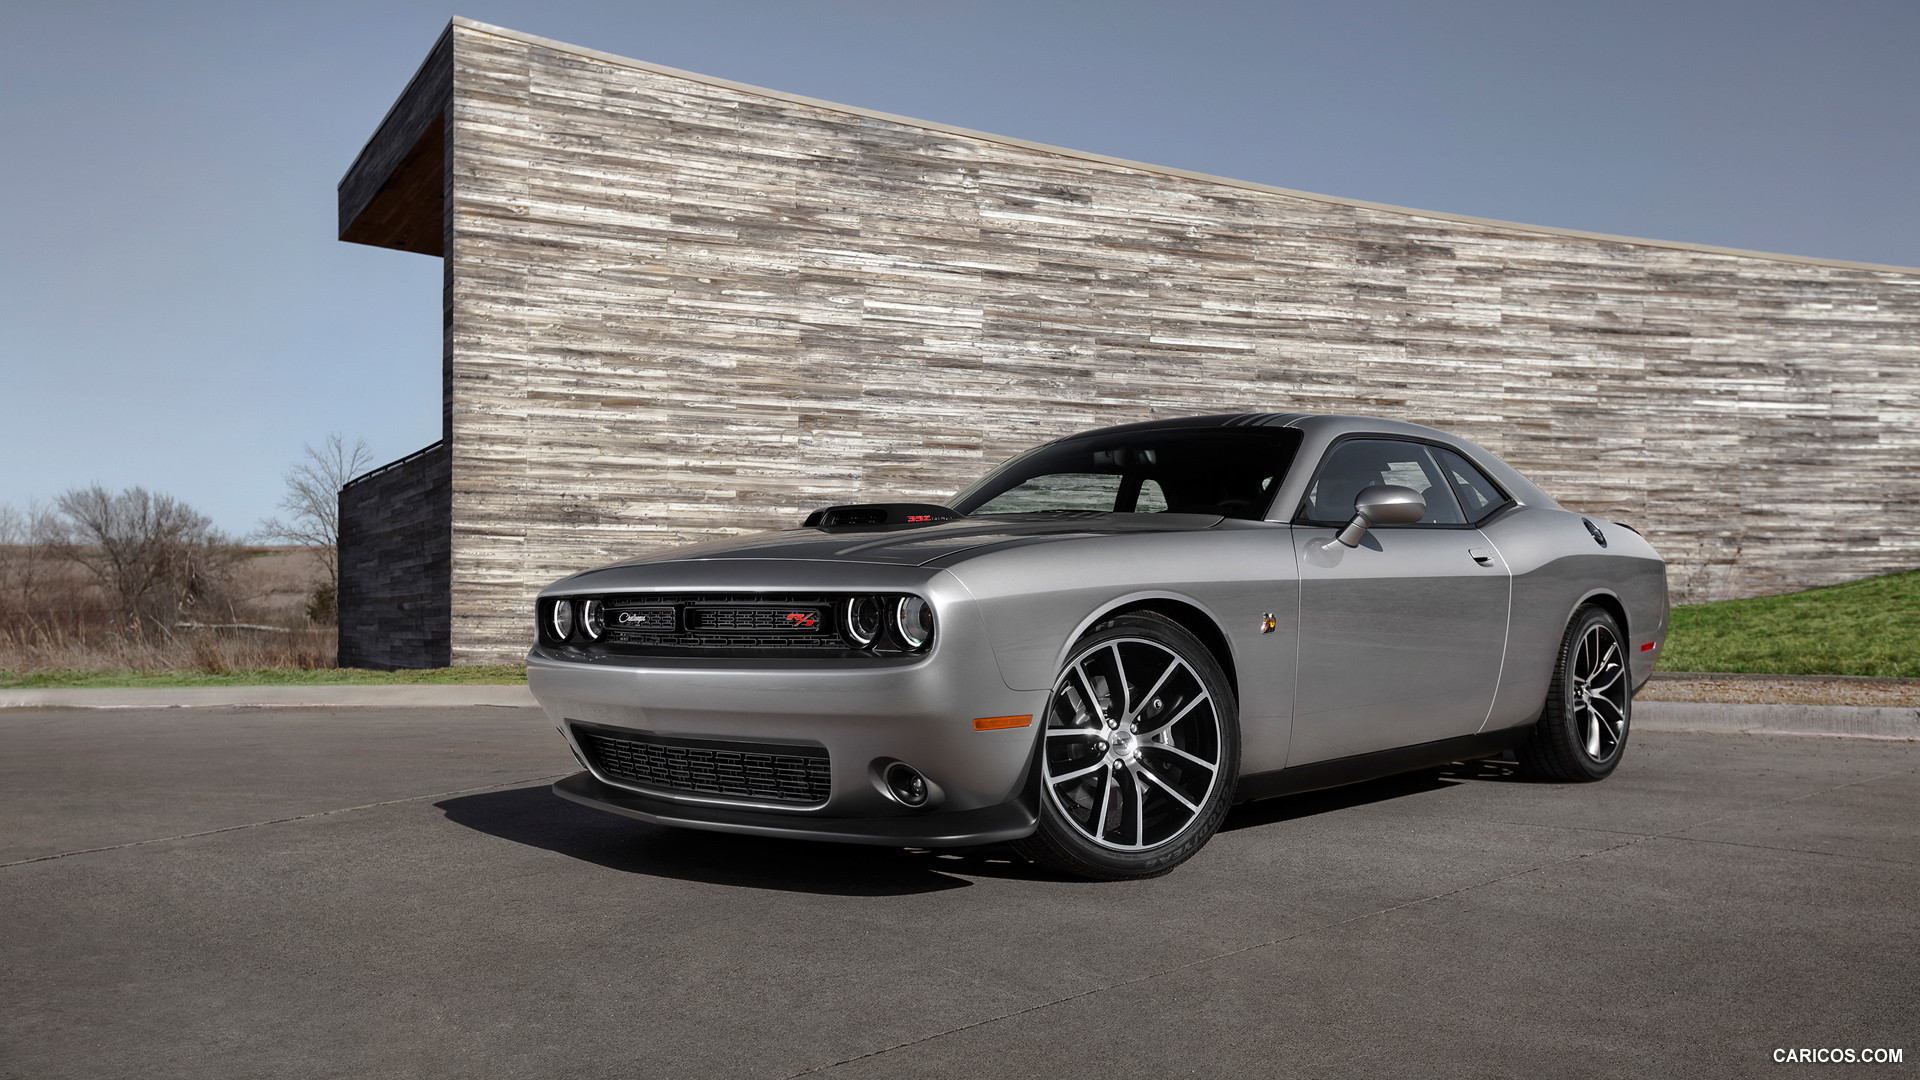 New Dodge Challenger Deals and Lease fers